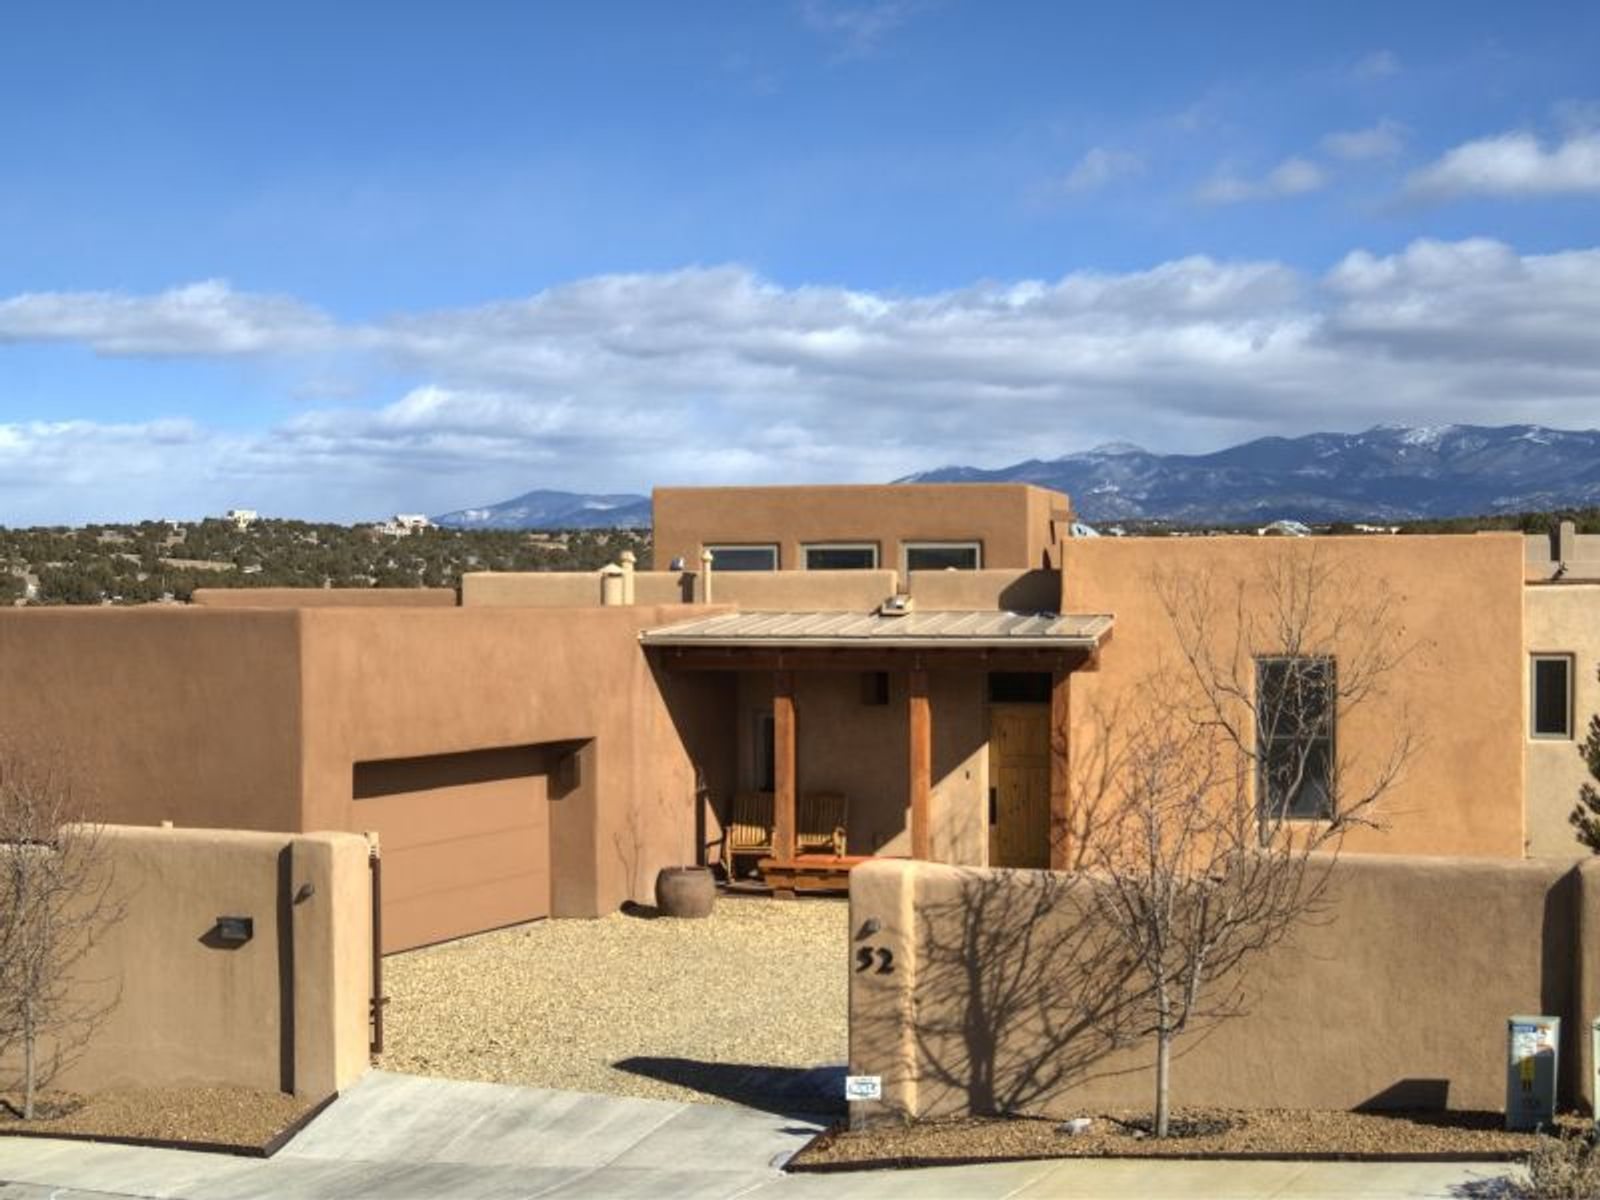 52 Centaurus Ranch Road, Santa Fe NM Single Family Home - Santa Fe Real Estate